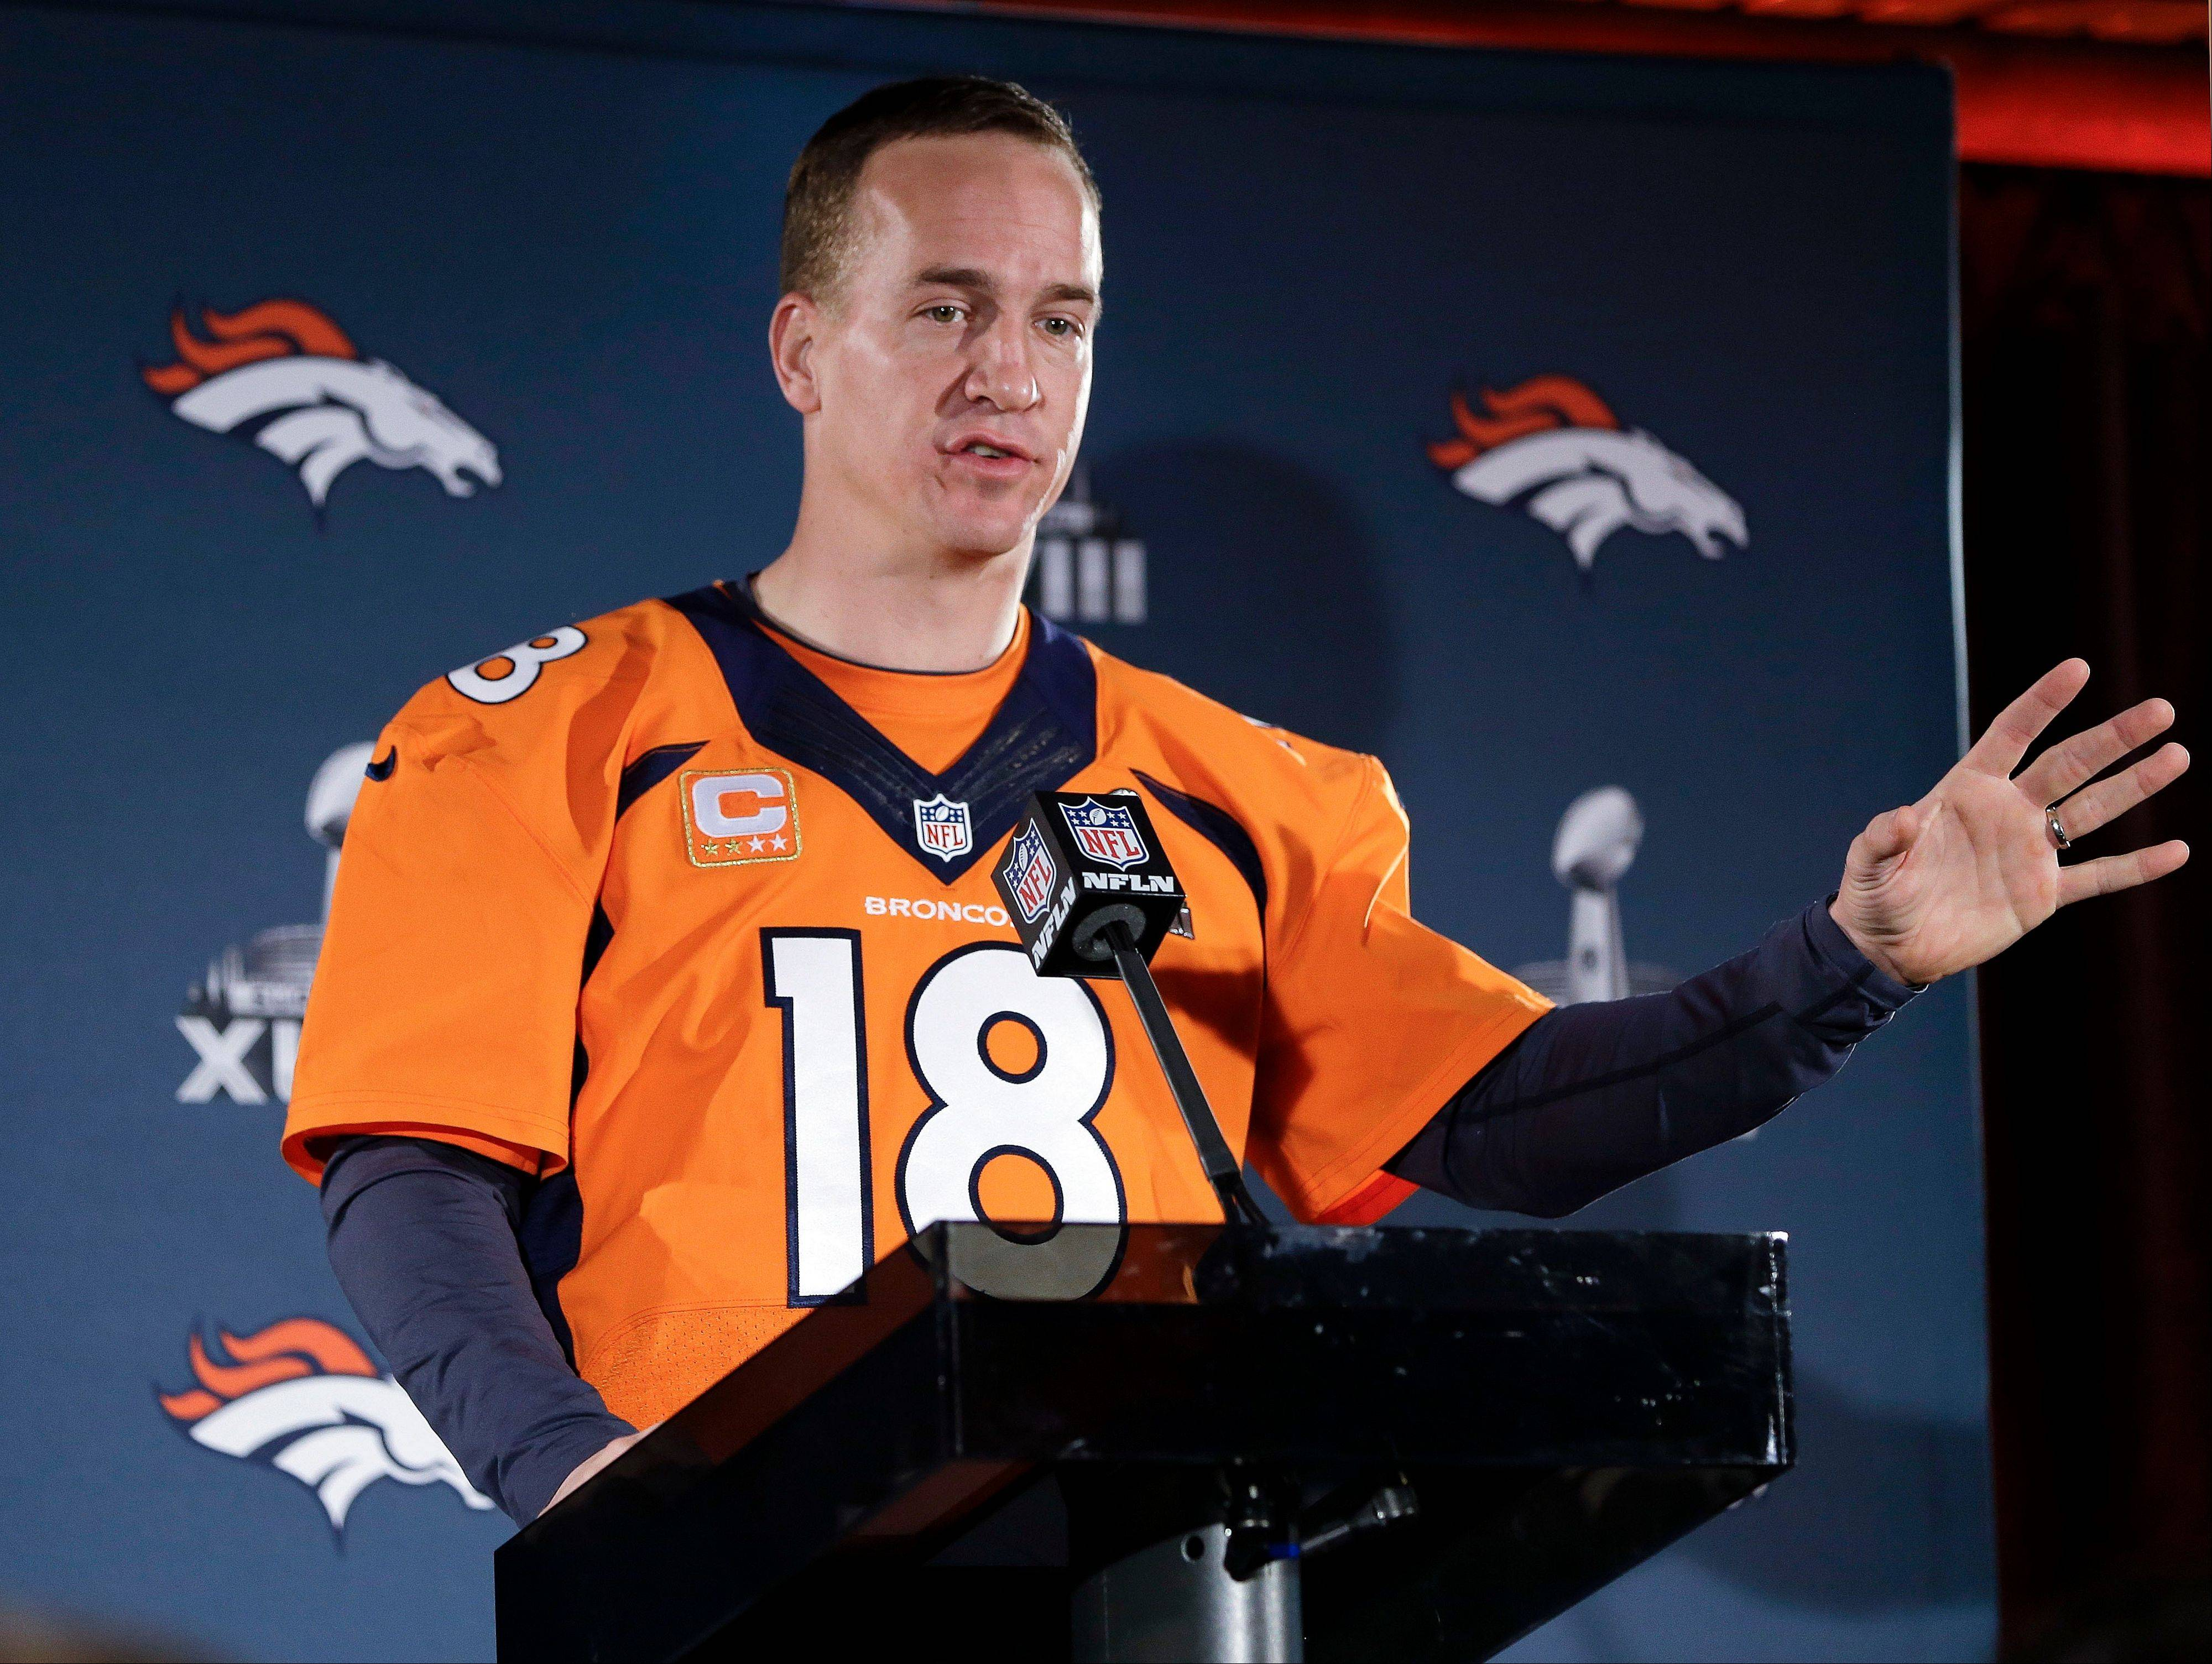 According to Mike Spellman, Denver Broncos quarterback Peyton Manning won't be walking out of MetLife Stadium with a second Super Bowl trophy.